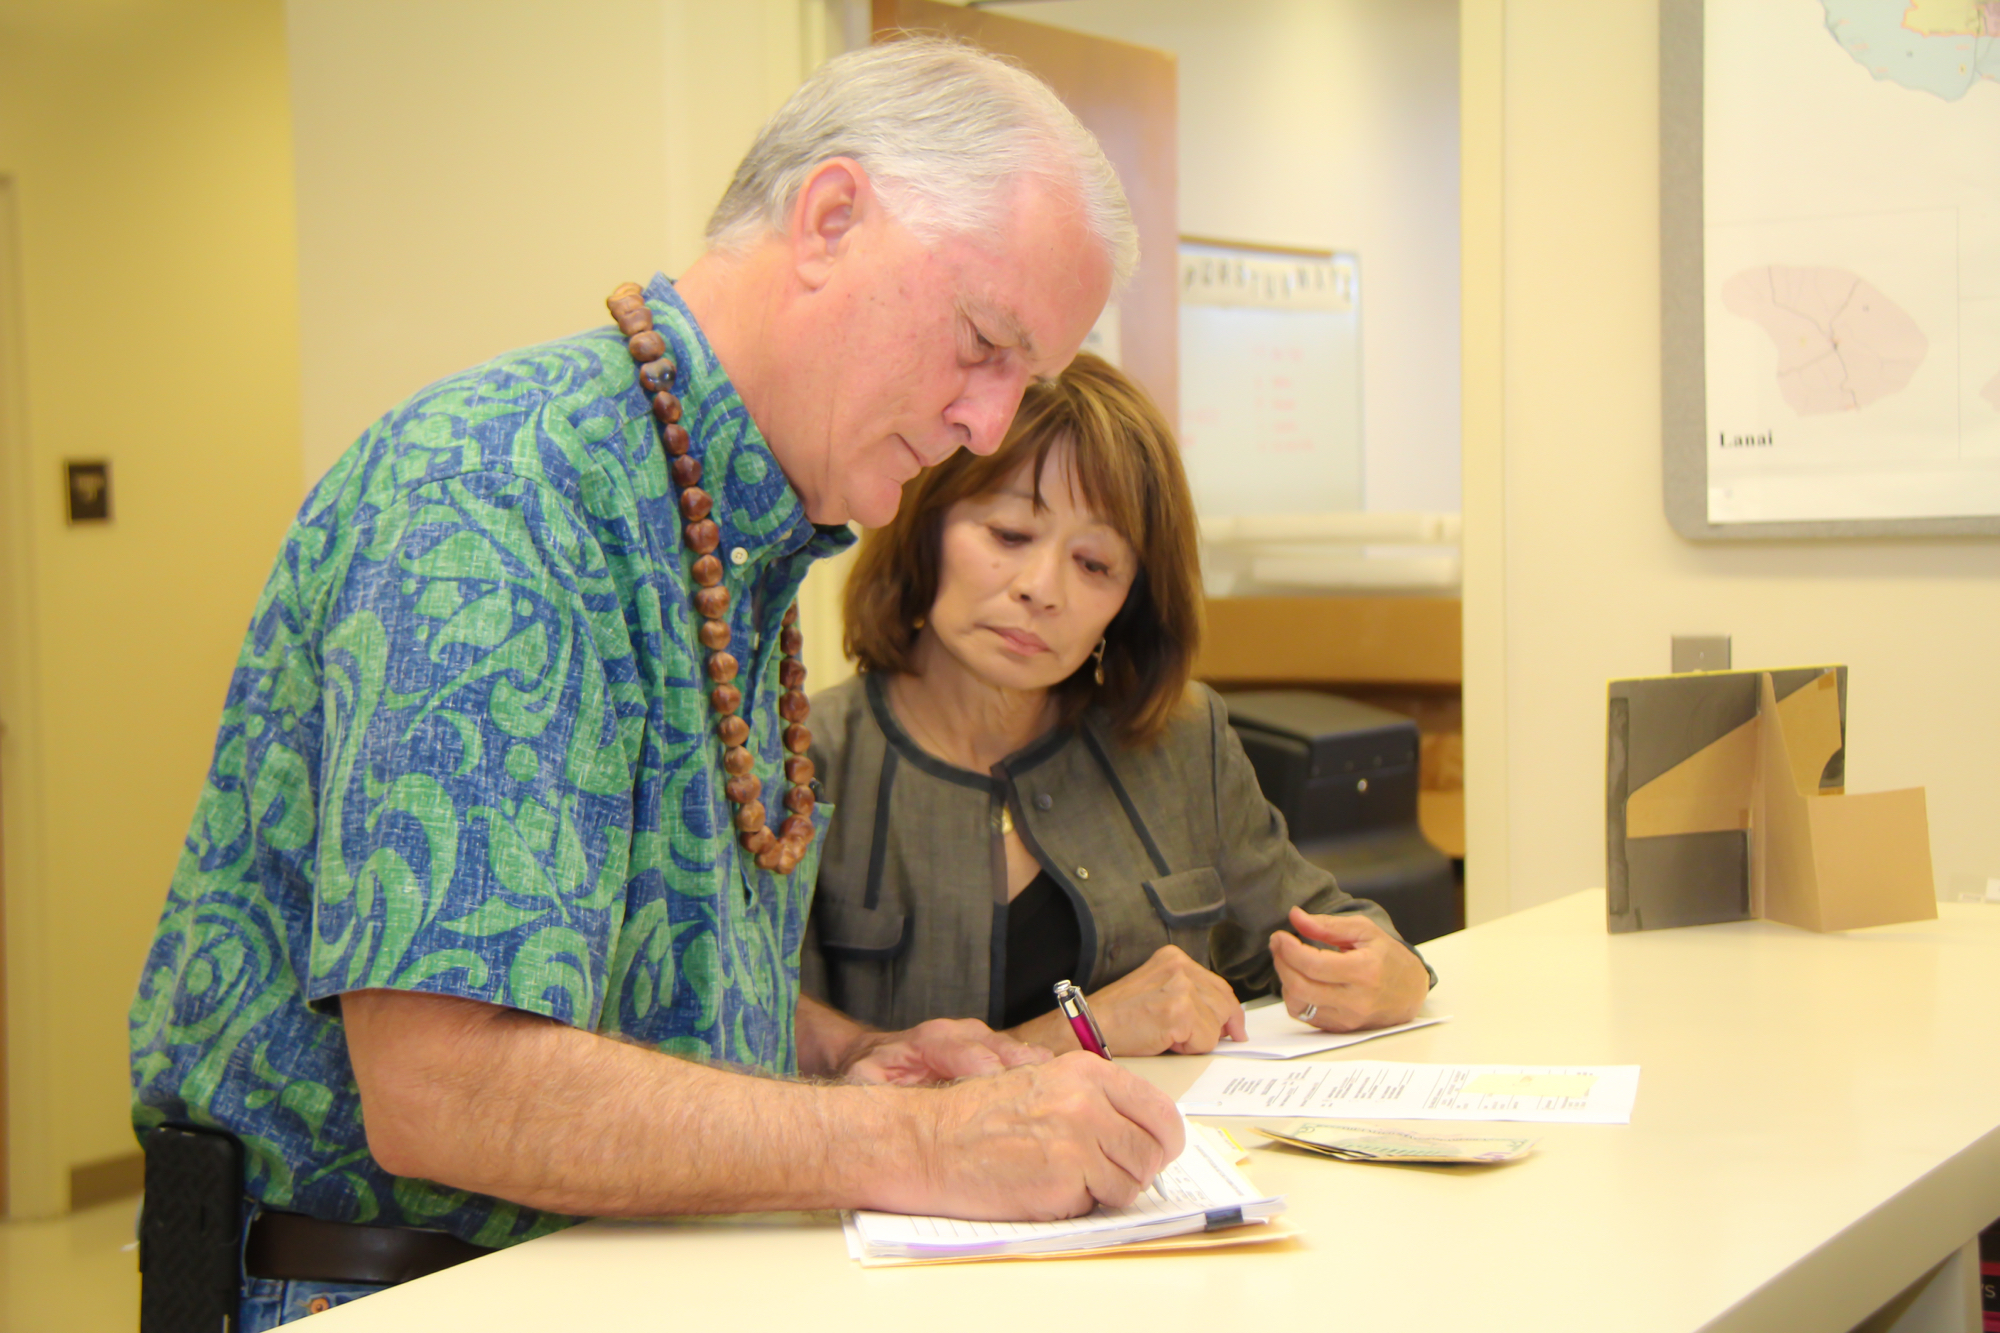 Council Chair Mike White filing for reelection at the County Clerk's Office with long-time Campaign Manager Leslie Ann Yokouchi.